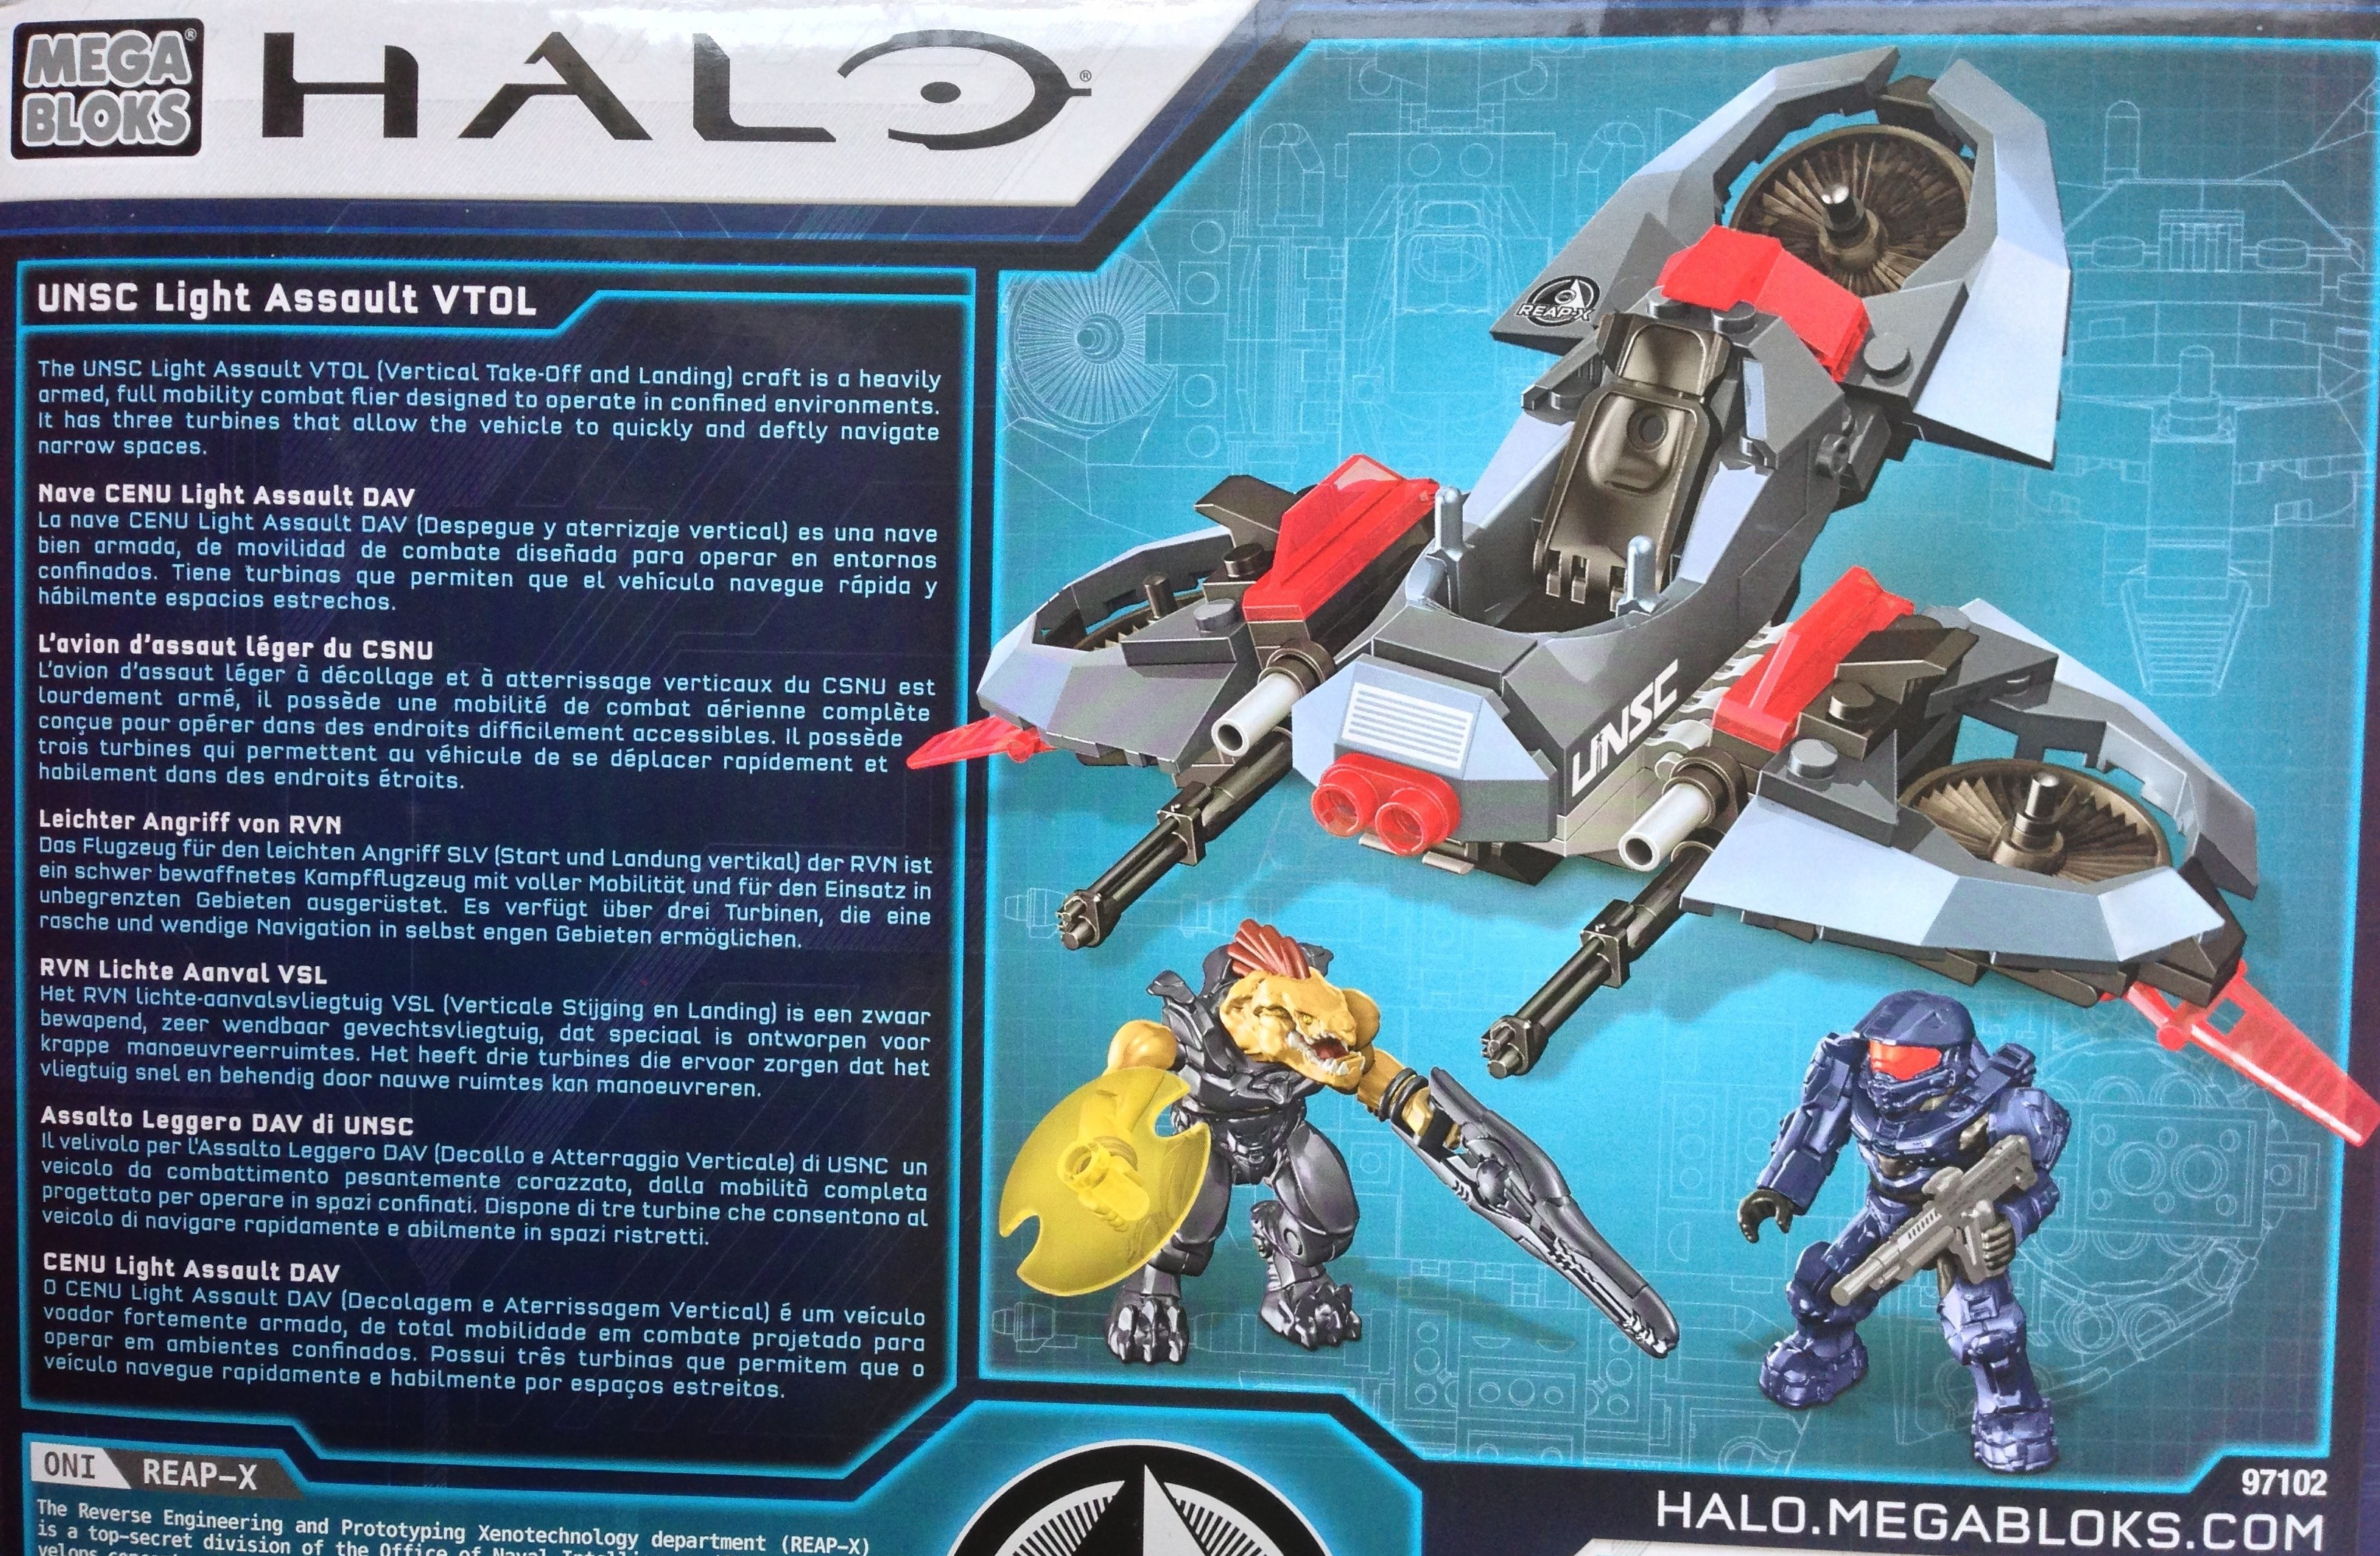 Halo Mega Bloks Unsc Light Assault Vtol Review 97102 Oni Reap X